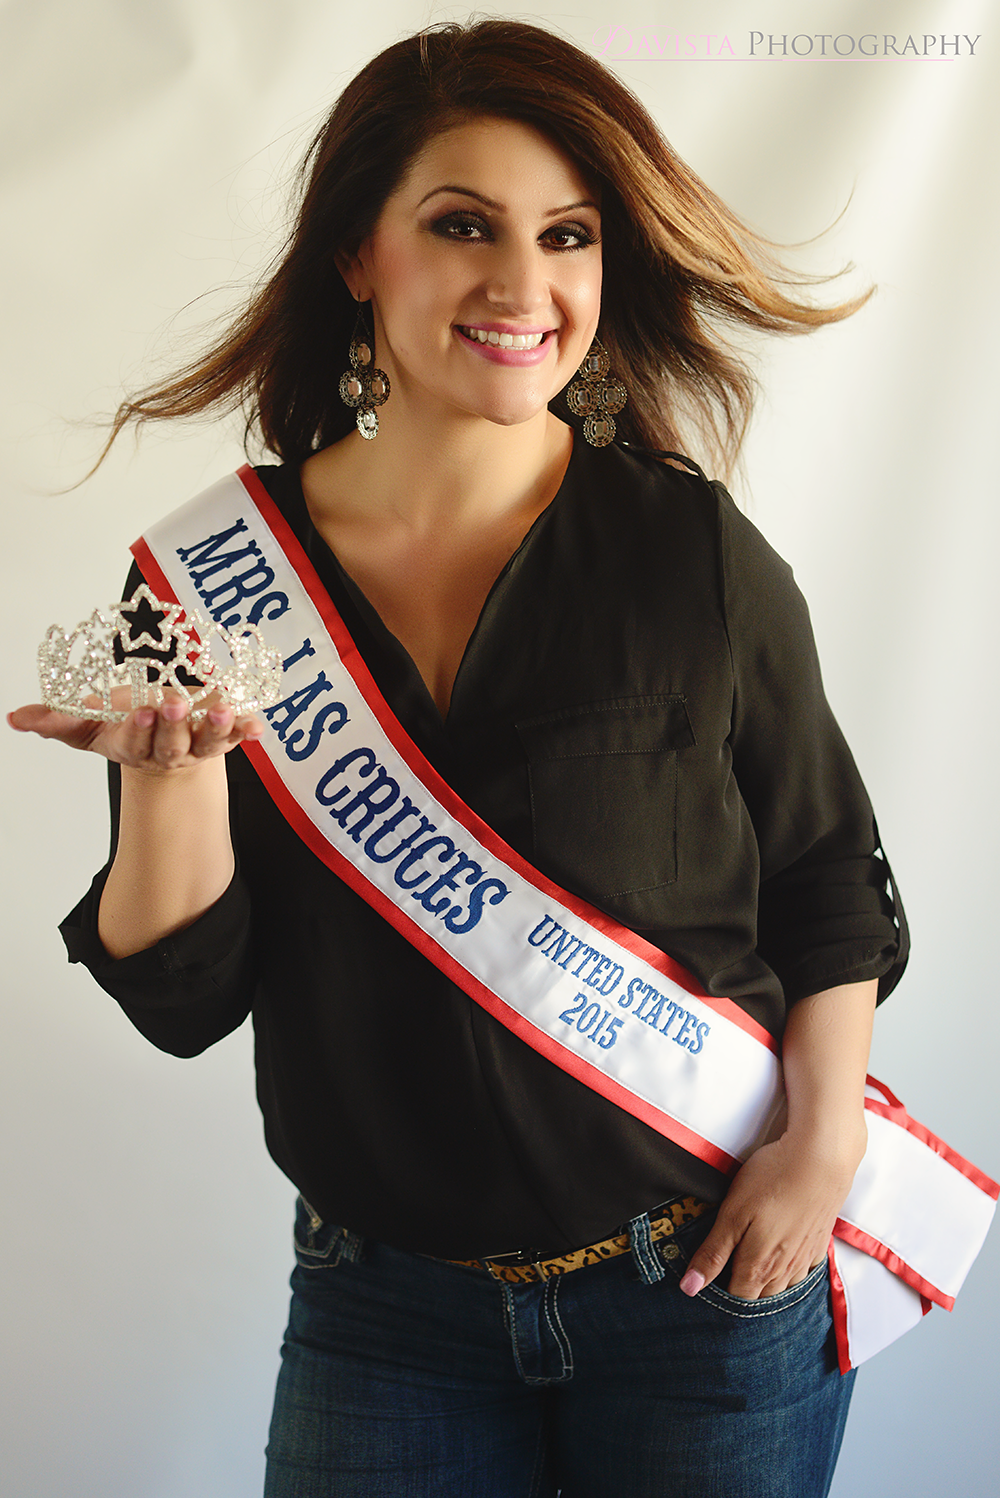 pageant-photography-with-crown-and-sash-unique-fun-new-mexico